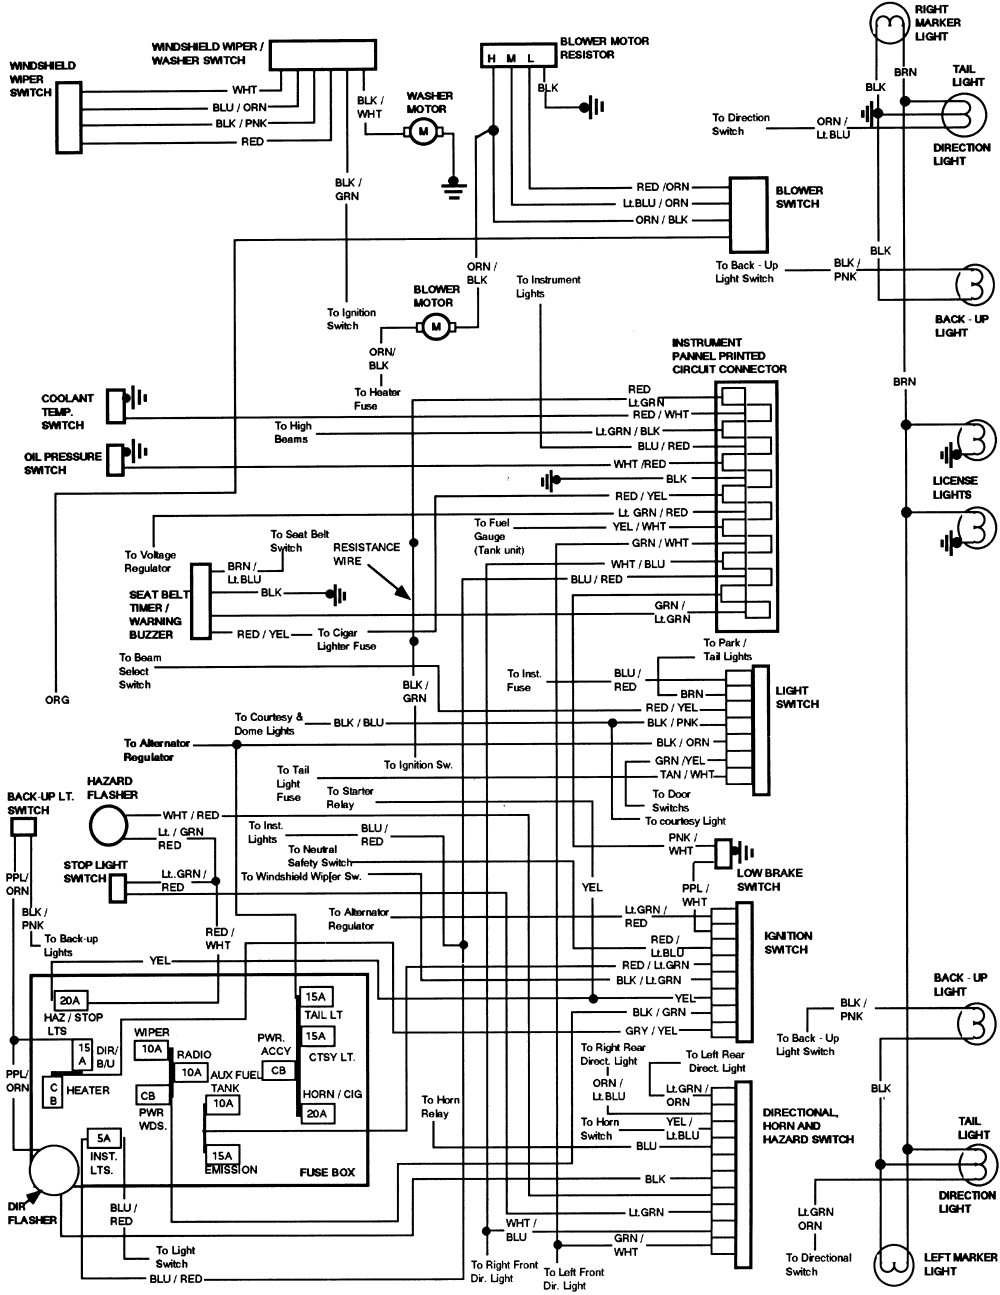 Ford F 350 4X4 Wiring Diagrams - Wiring Diagram Data Oreo - 2011 Ford F350 Trailer Wiring Diagram